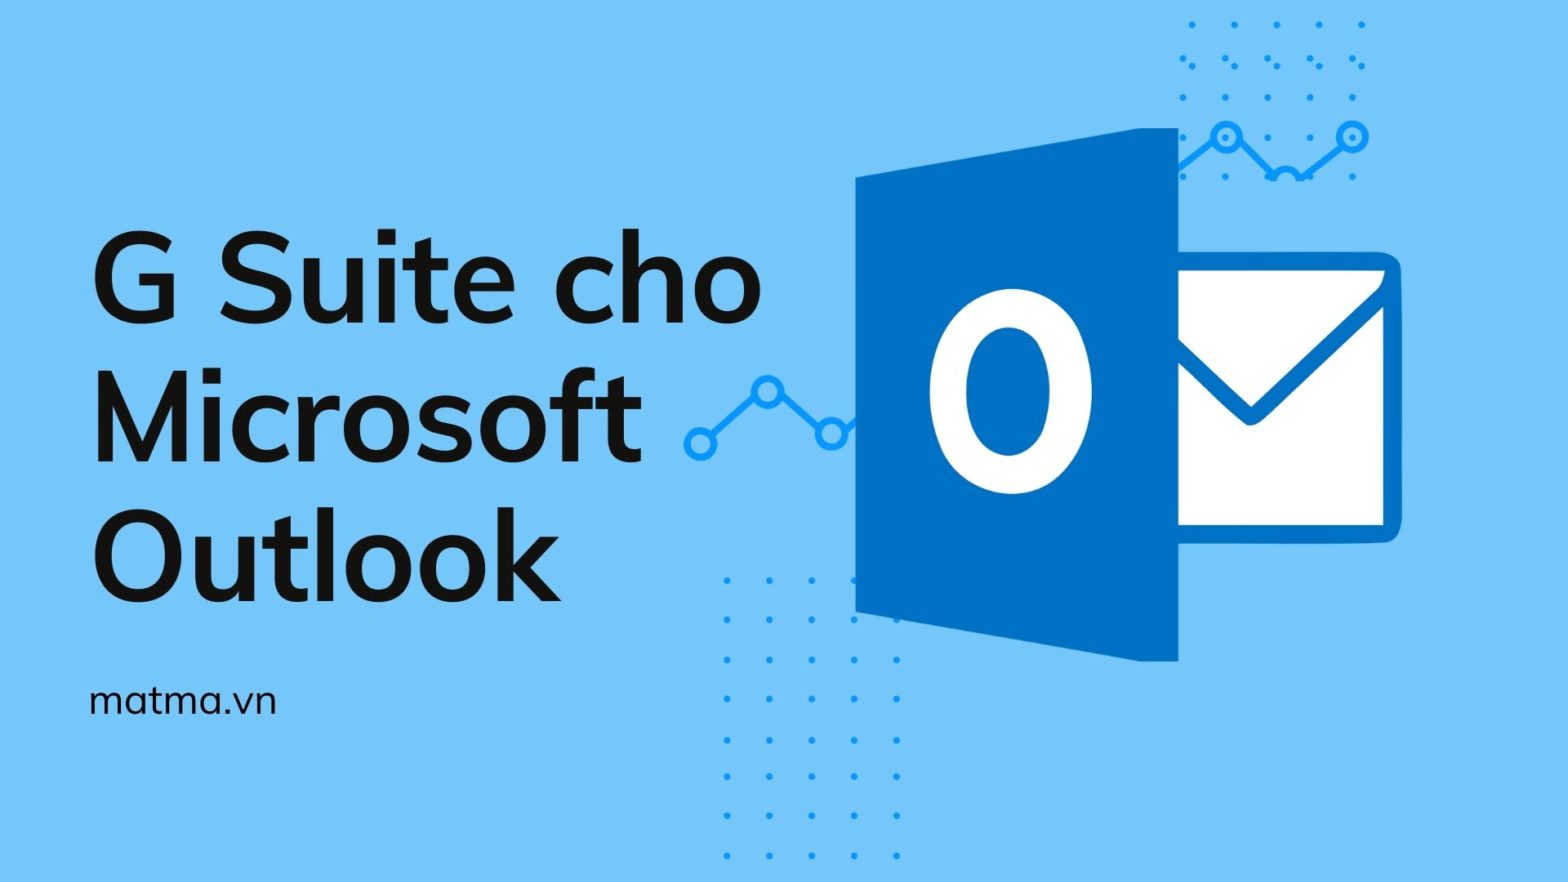 G Suite cho Microsoft Outlook